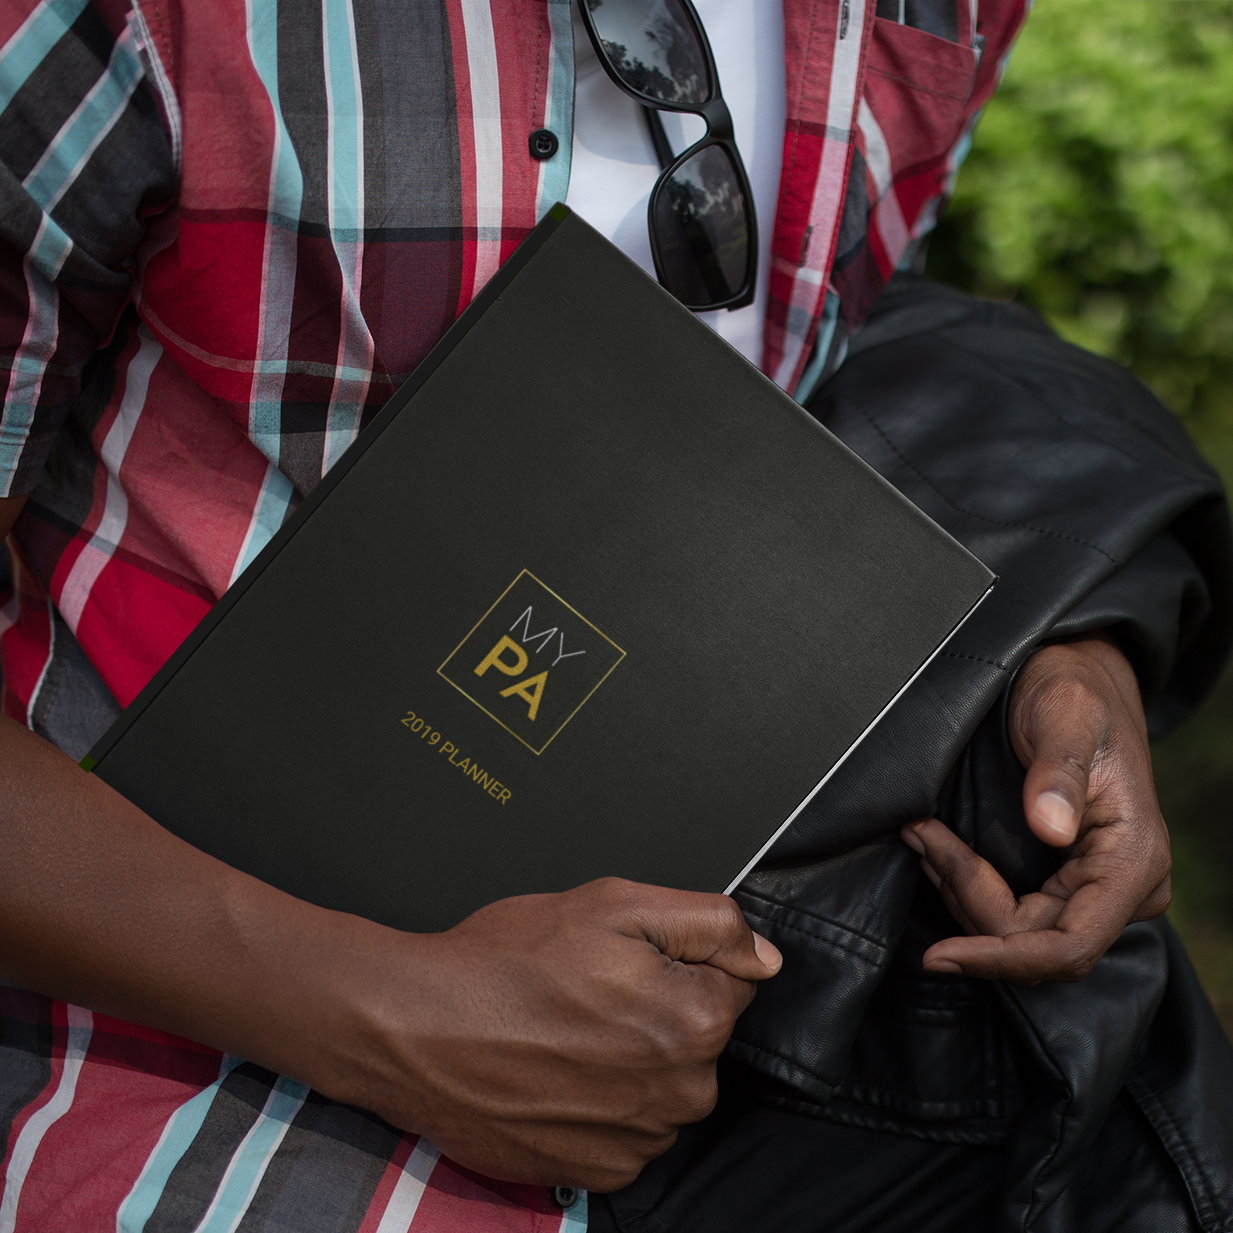 You won't want to go anywhere without your personal assistant planner.